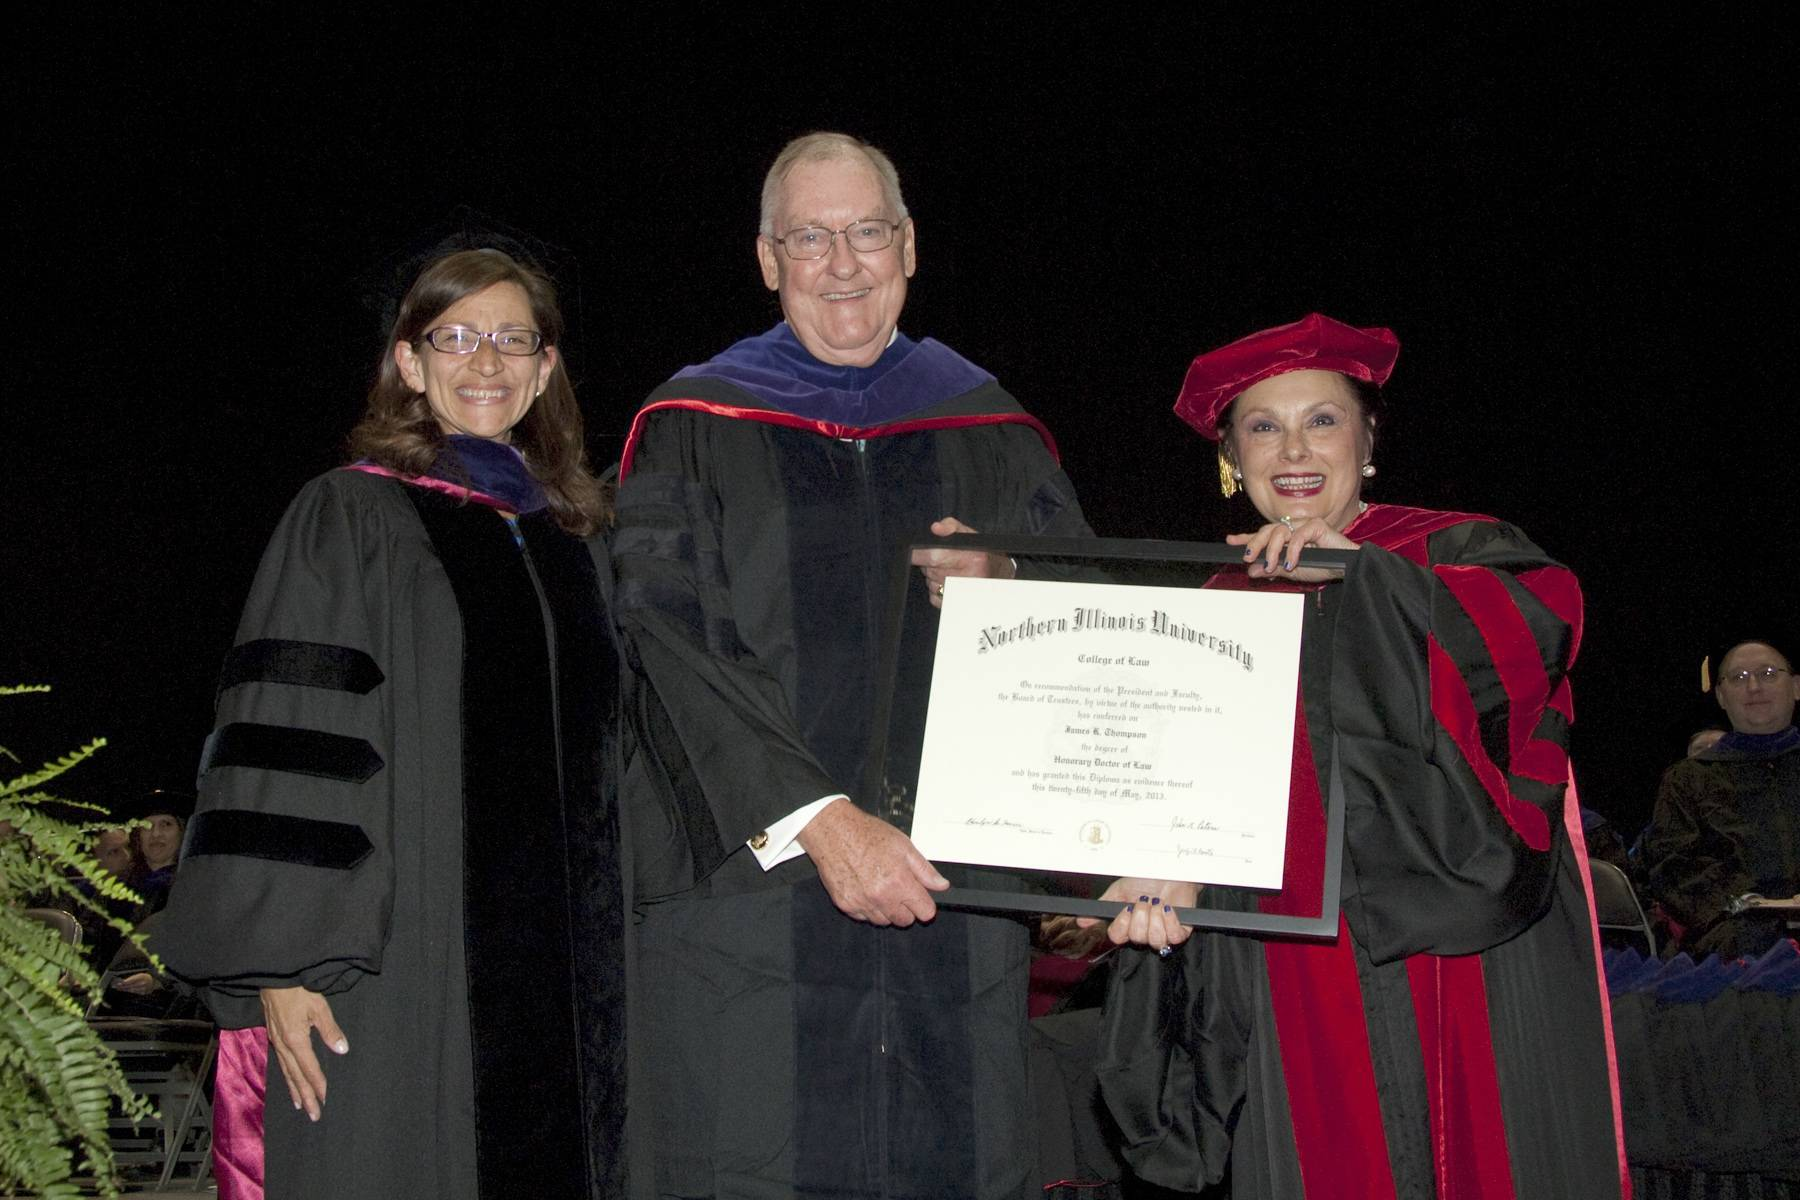 NIU Law Dean Jennifer Rosato (left) and Cherilyn Murer ('78) (right), Chair of the NIU Board of Trustees, present Governor James Thompson (center) with an honorary Doctorate of Law degree during NIU Law's Commencement ceremony.  Governor Thompson was also featured as the commencement speaker.